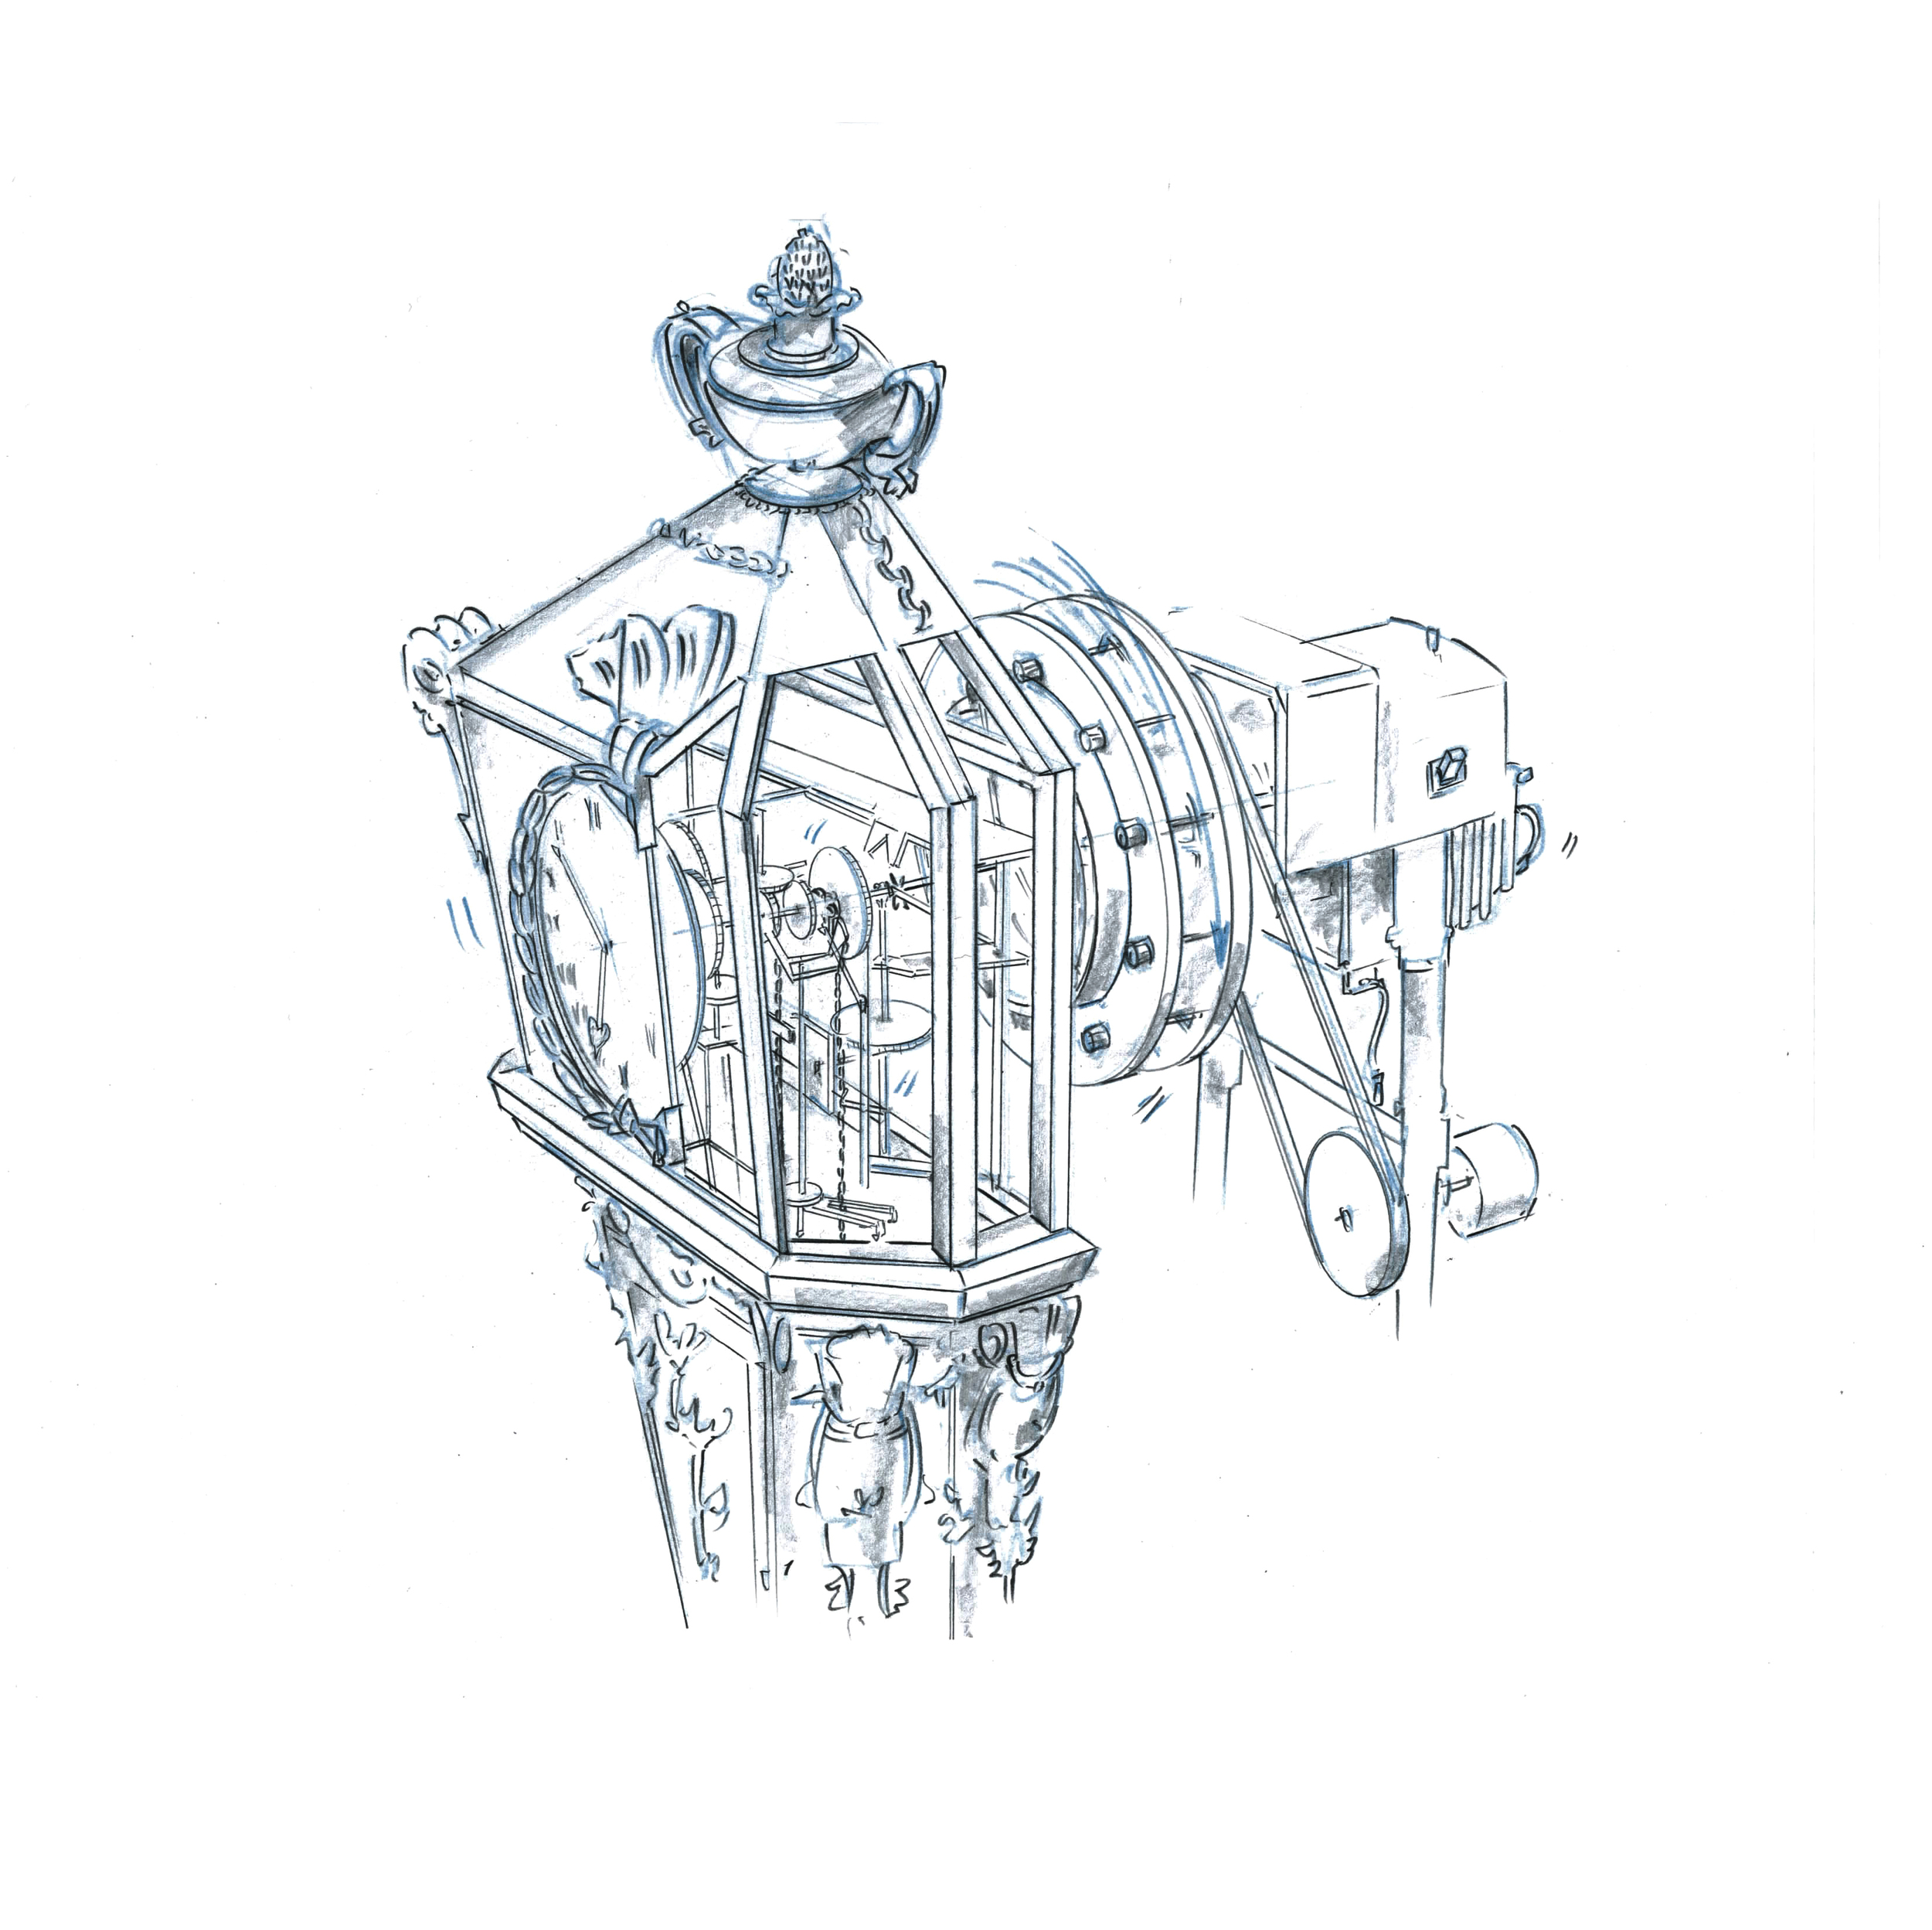 The pairing of incongruous elements  can add a playful twist to a client communication. This drawing was one of various concepts developed for a Cadillac luxury line.